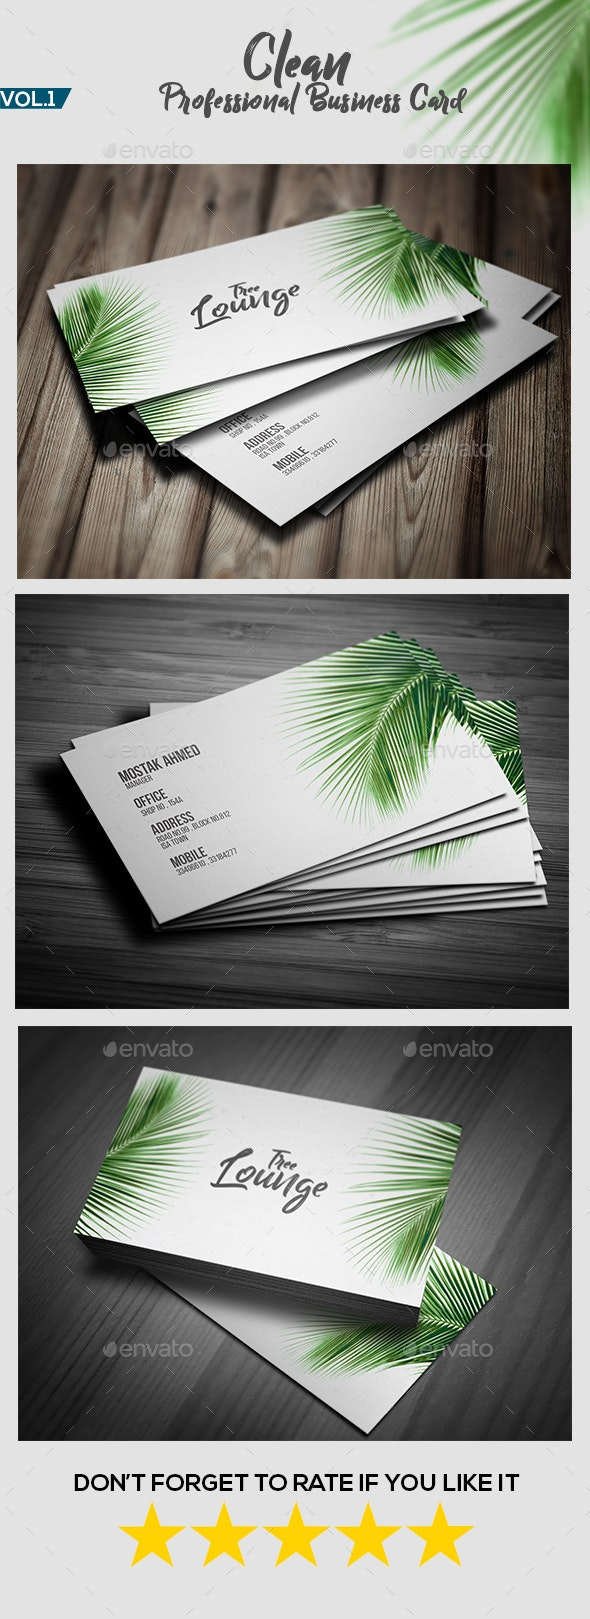 Clean Professional Business Card V.1 - Creative Business Cards